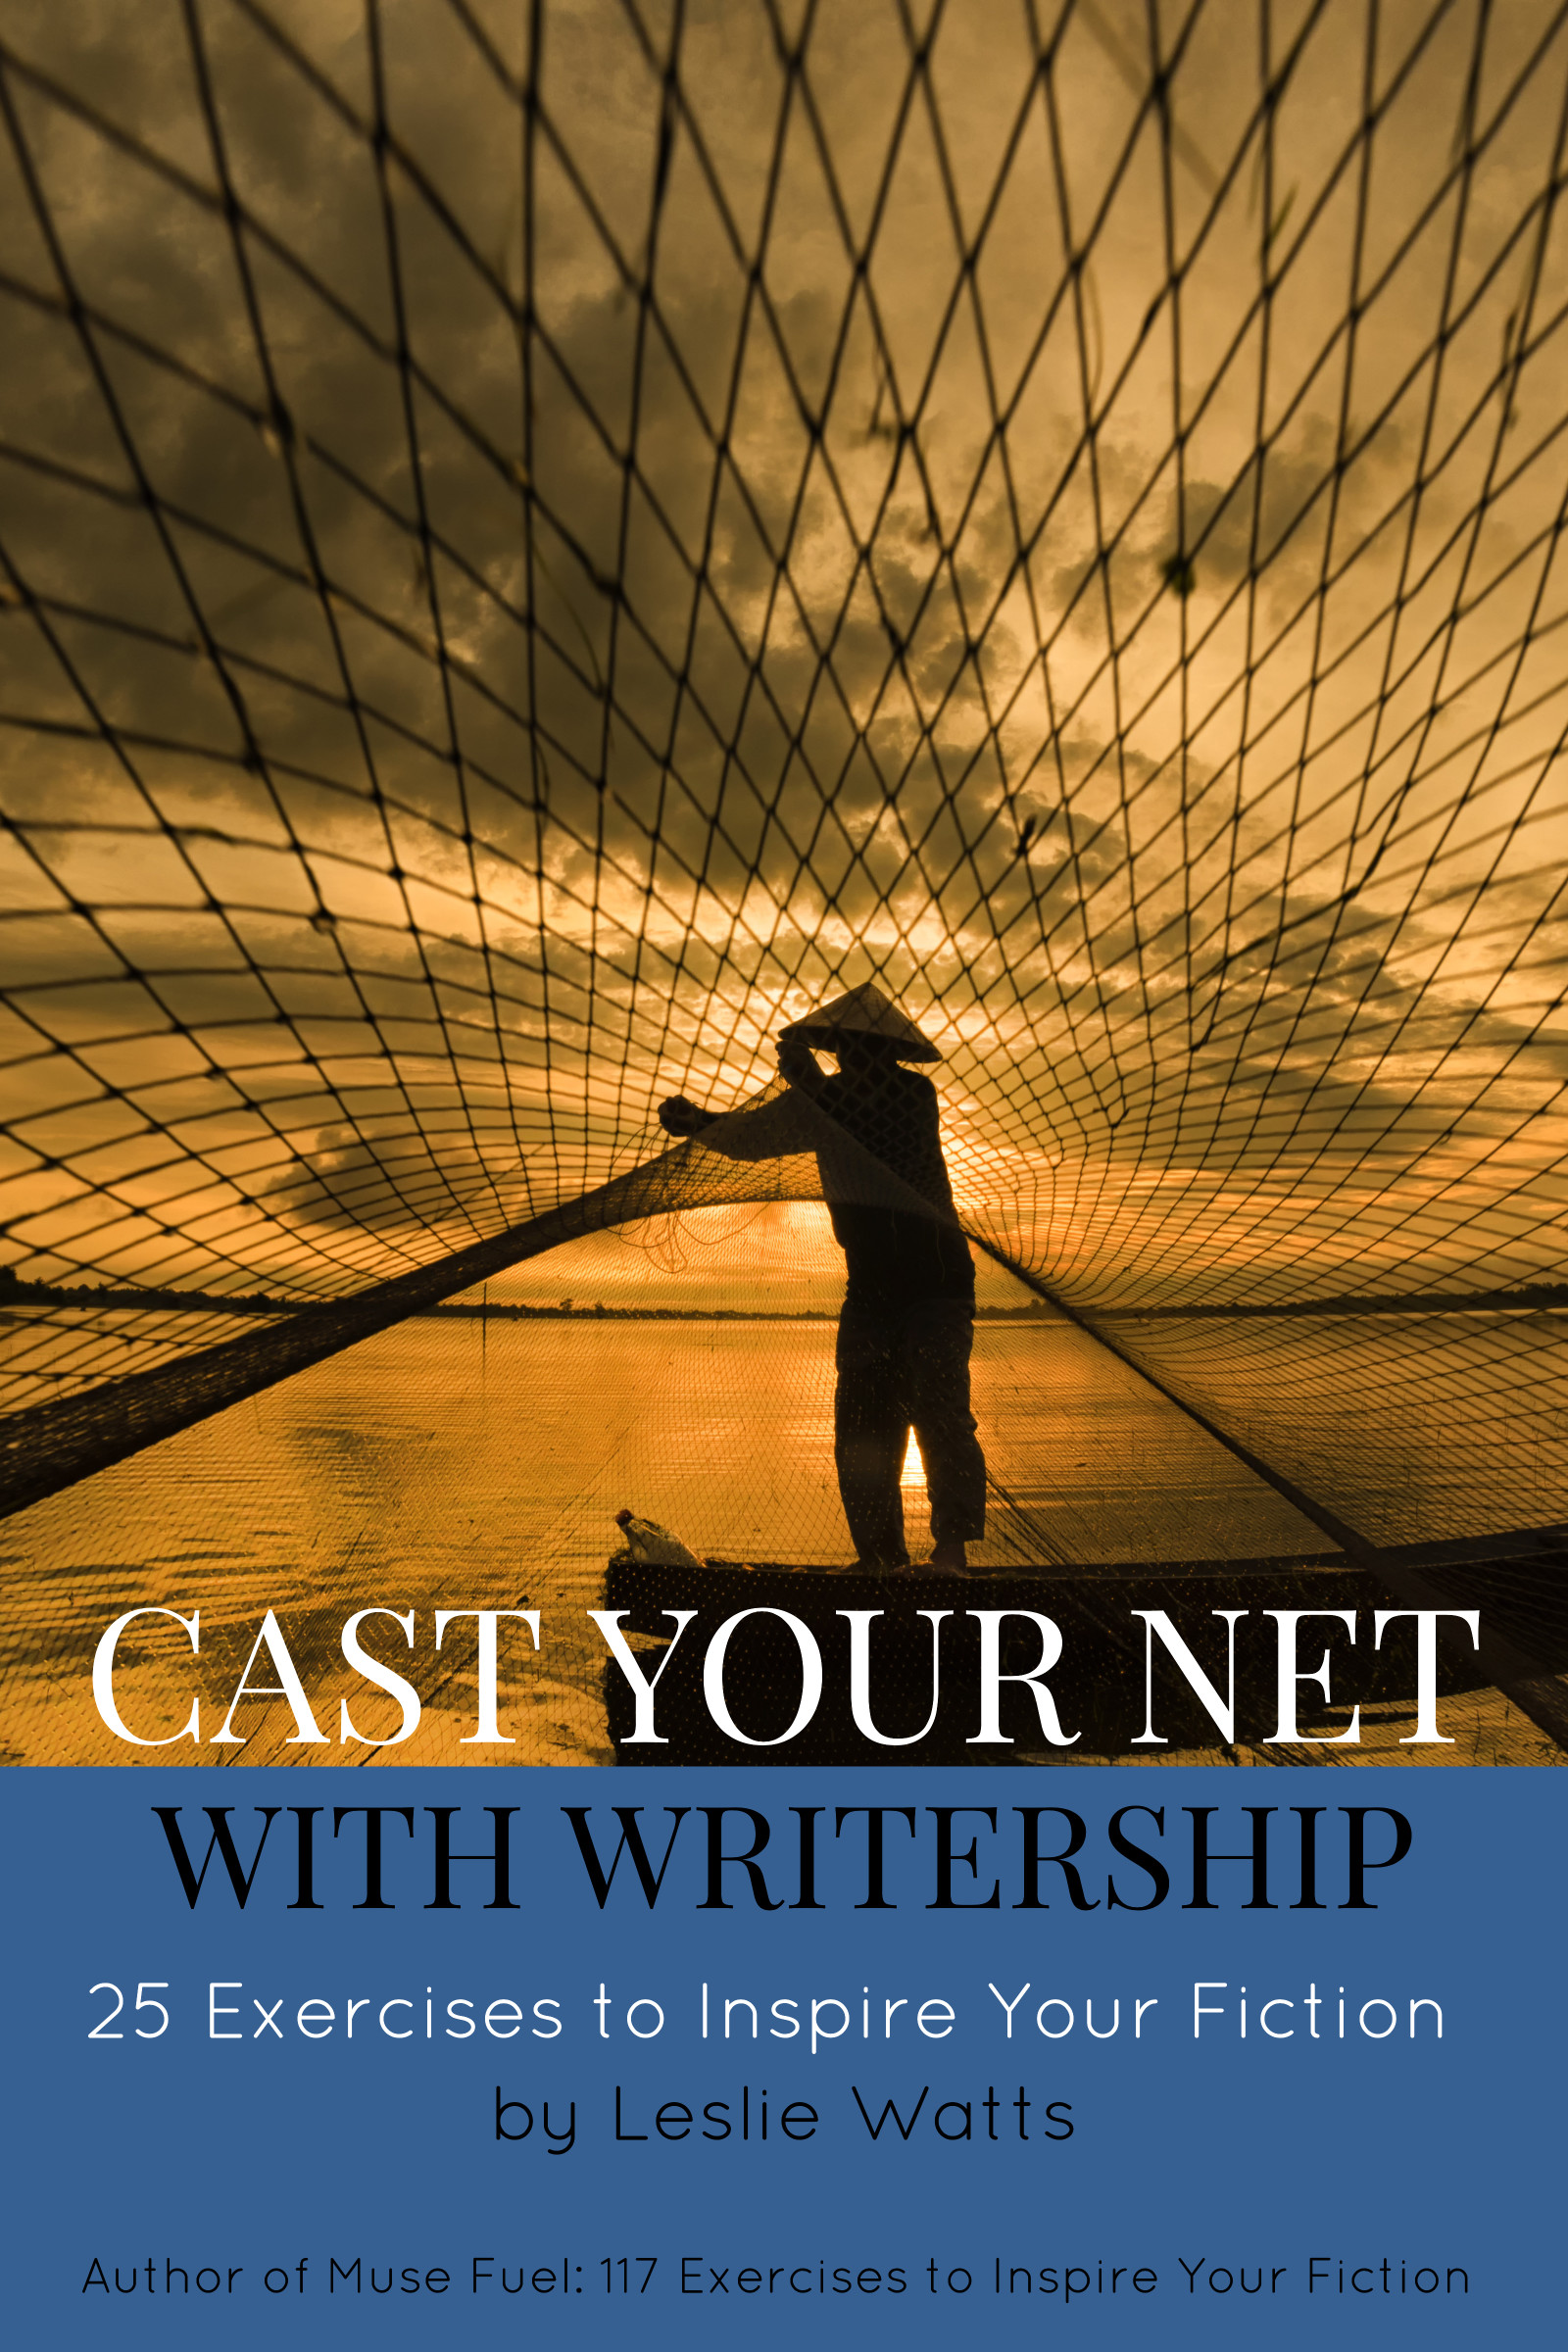 Cast Your Net with Writership, 25 Exercises to Inspire Your Fiction  by Leslie Watts.